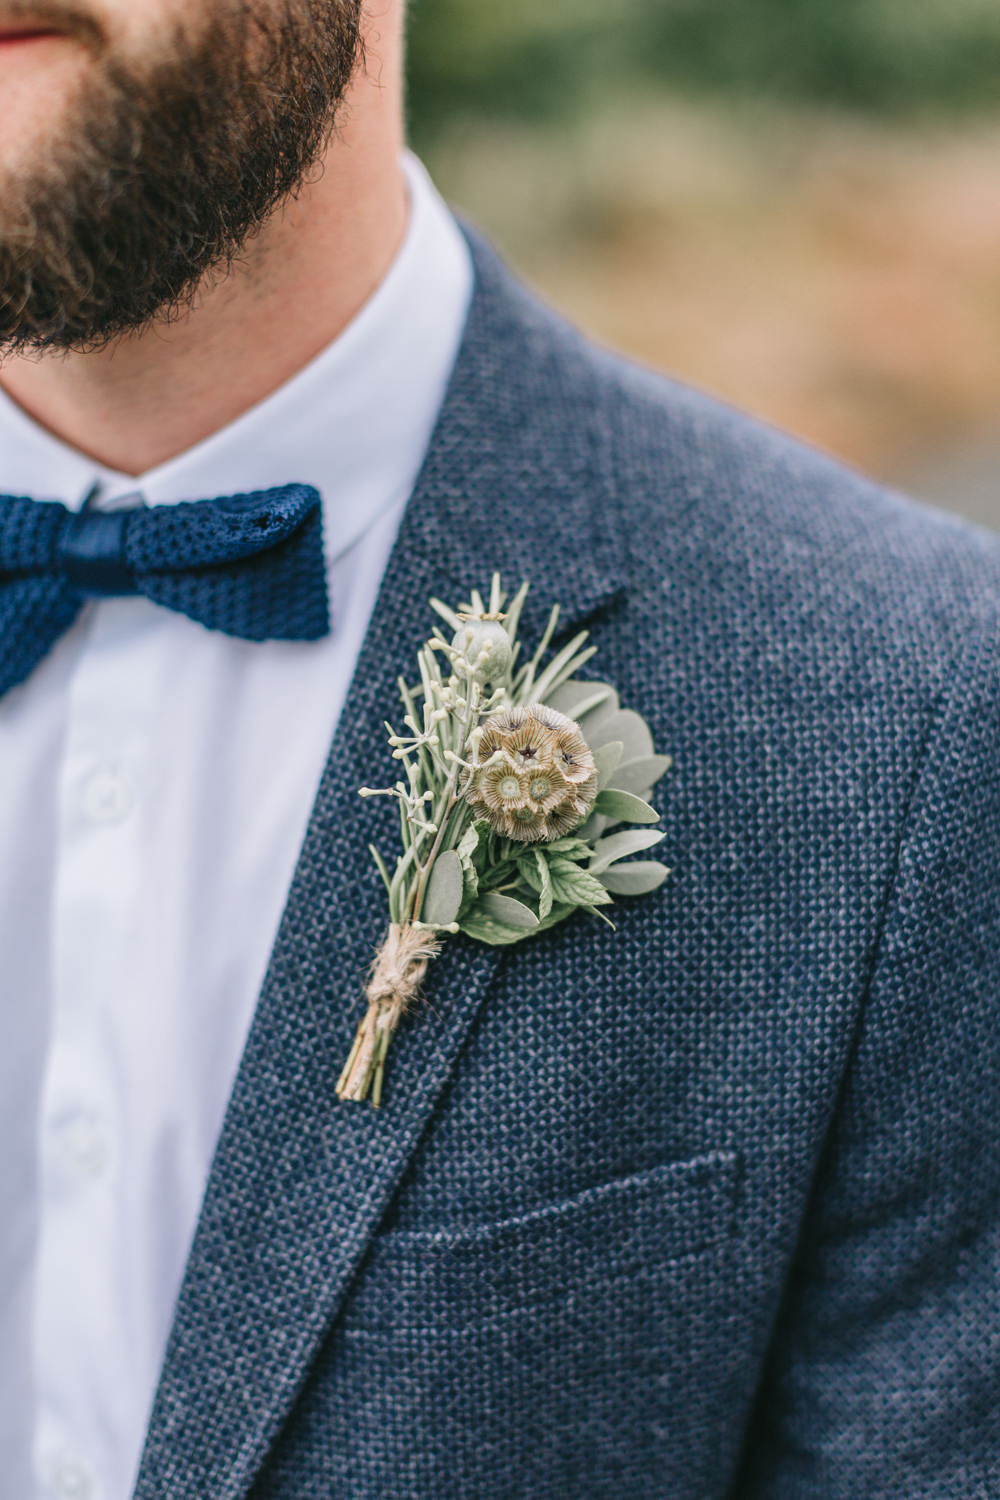 Buttonhole Groom Seed Head Herbs Rosemary Healey Barn Wedding Amy Lou Photography